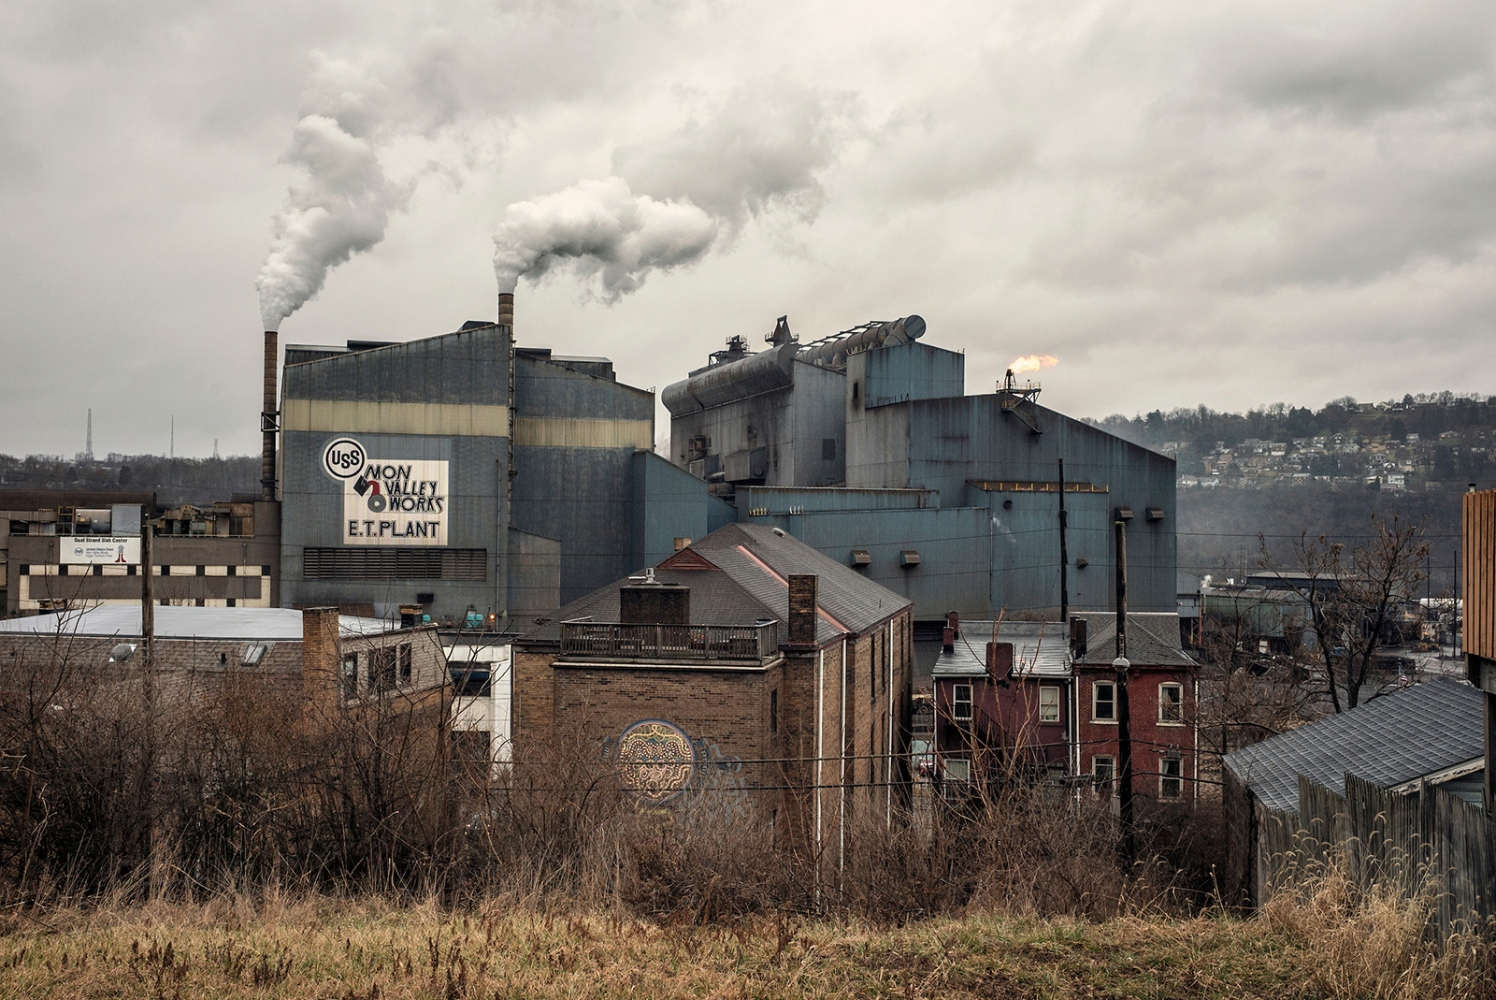 A vision of The Edgar Thomson Steel Works, steel mill in the Pittsburgh area communities of Braddock and North Braddock, Pennsylvania. Pennsylvania is one of the battleground states.  In 2012 Obama won Pennsylvania over Romney by 5.2%, in 2016 Donald Trump won by just 0.7%.